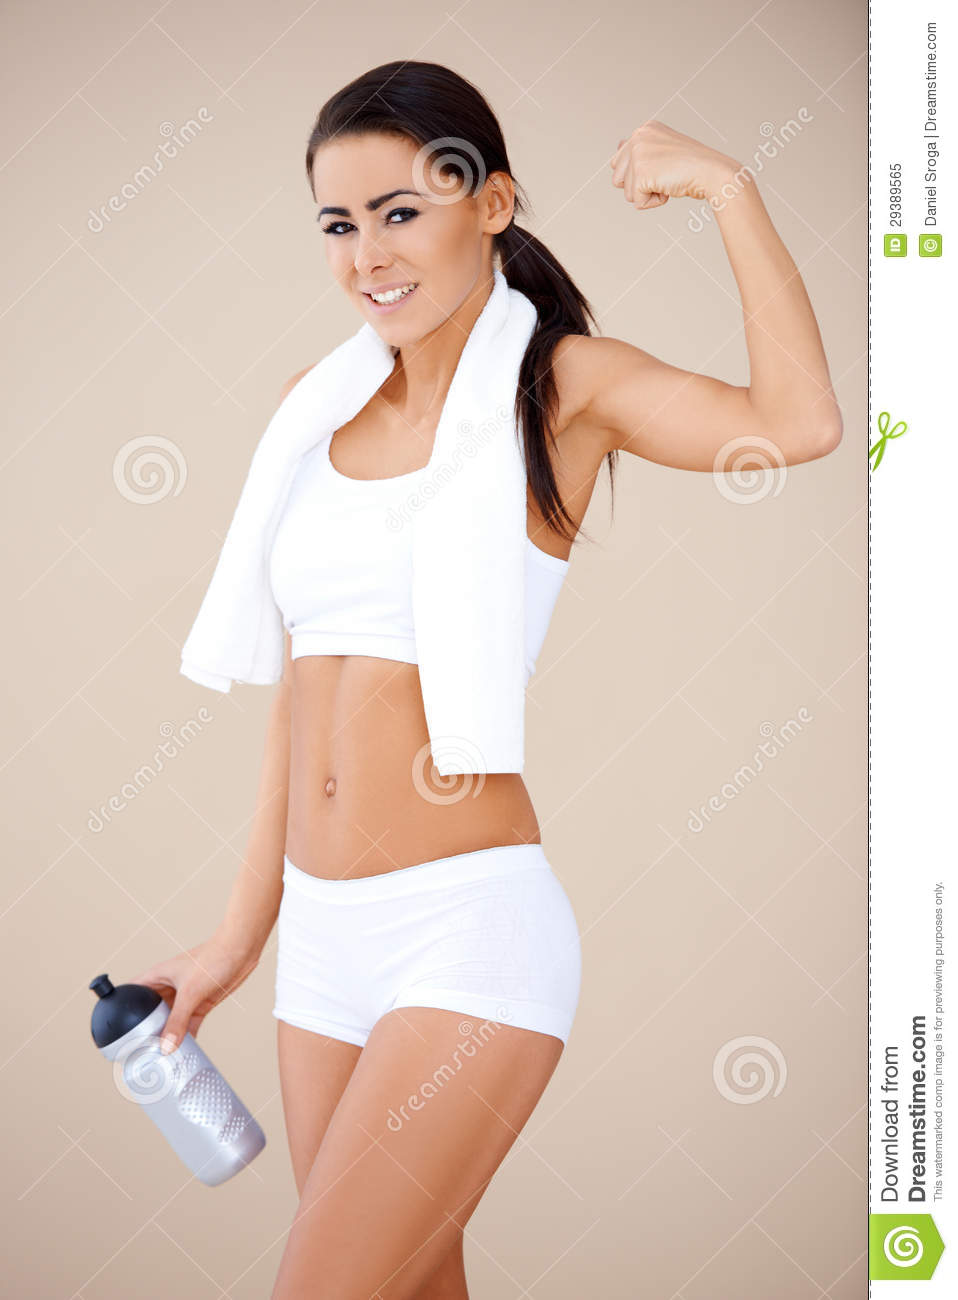 happy fitness girl showing her muscles